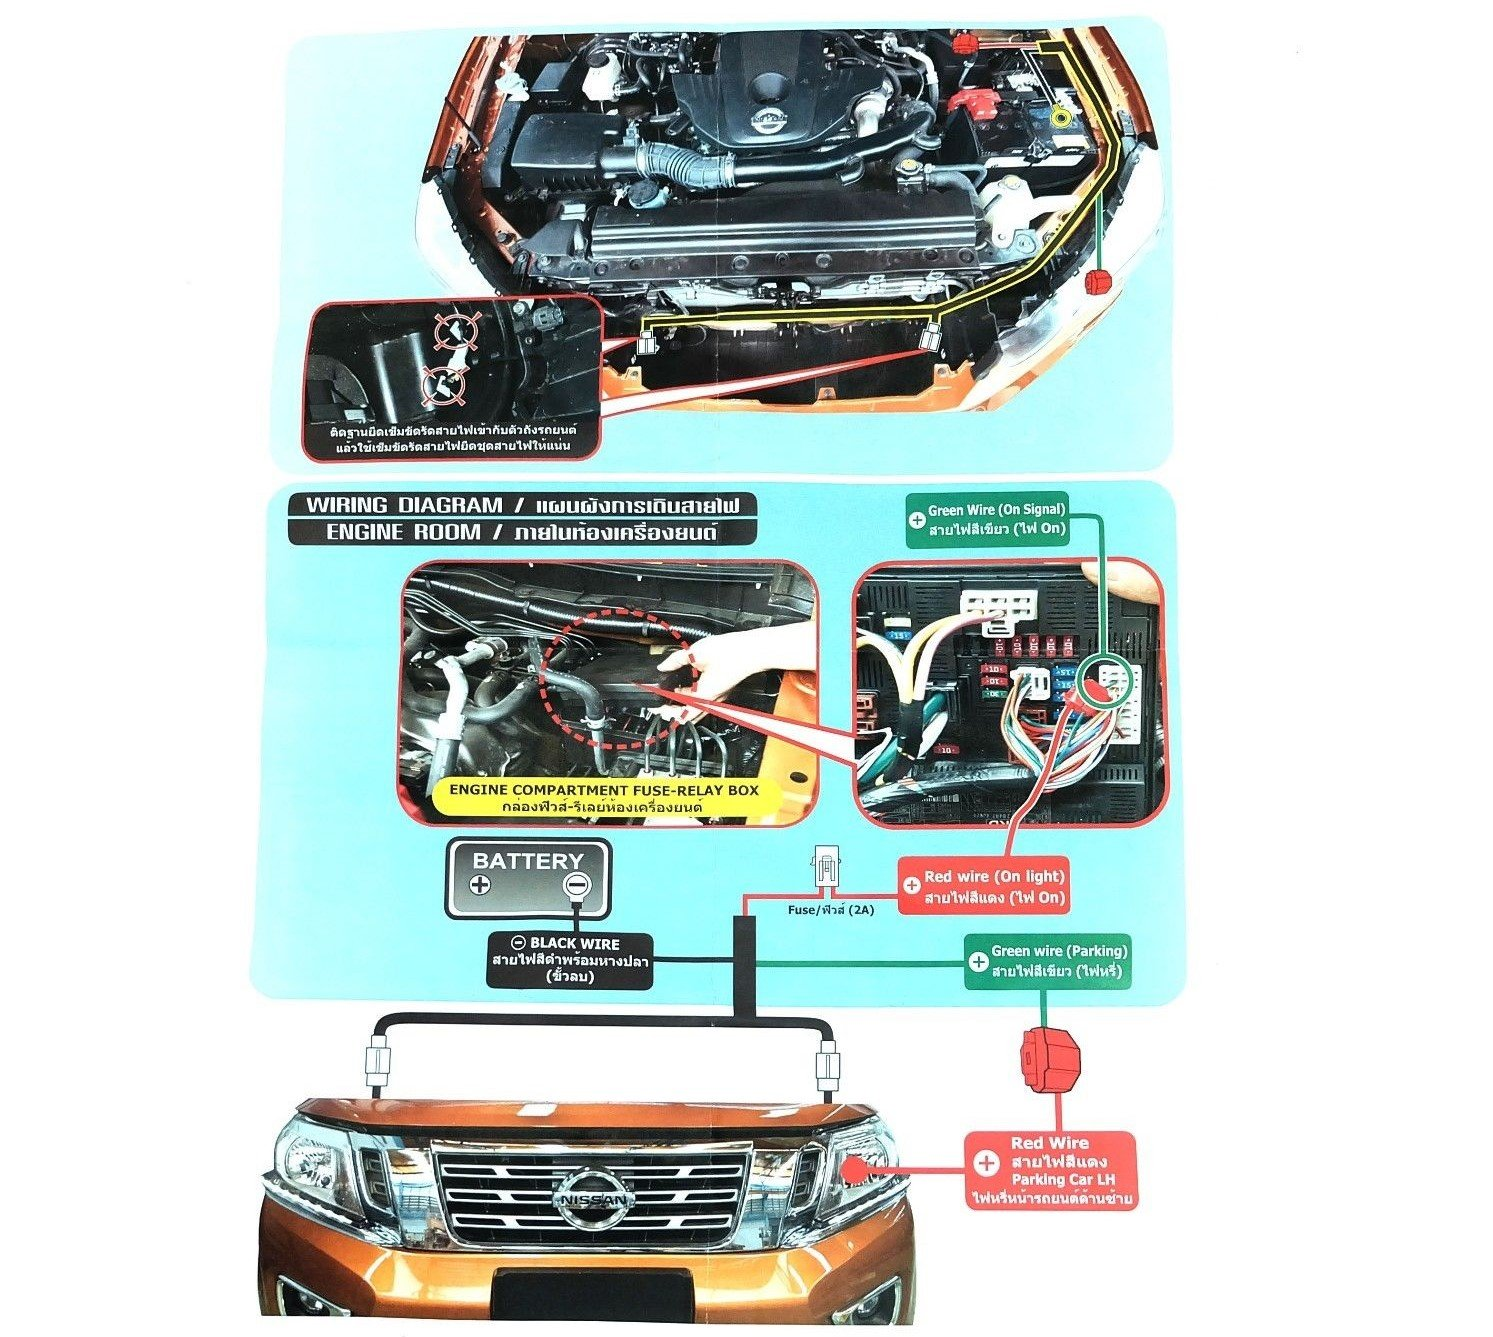 Led Daylight Chrome Headlight Lower Eyebrows Wiring Diagram Hilux Stereo Further Radio Nissan Navara Eyelid Cover Trim For Frontier Np300 Pickup 2014 2015 2016 Automotive